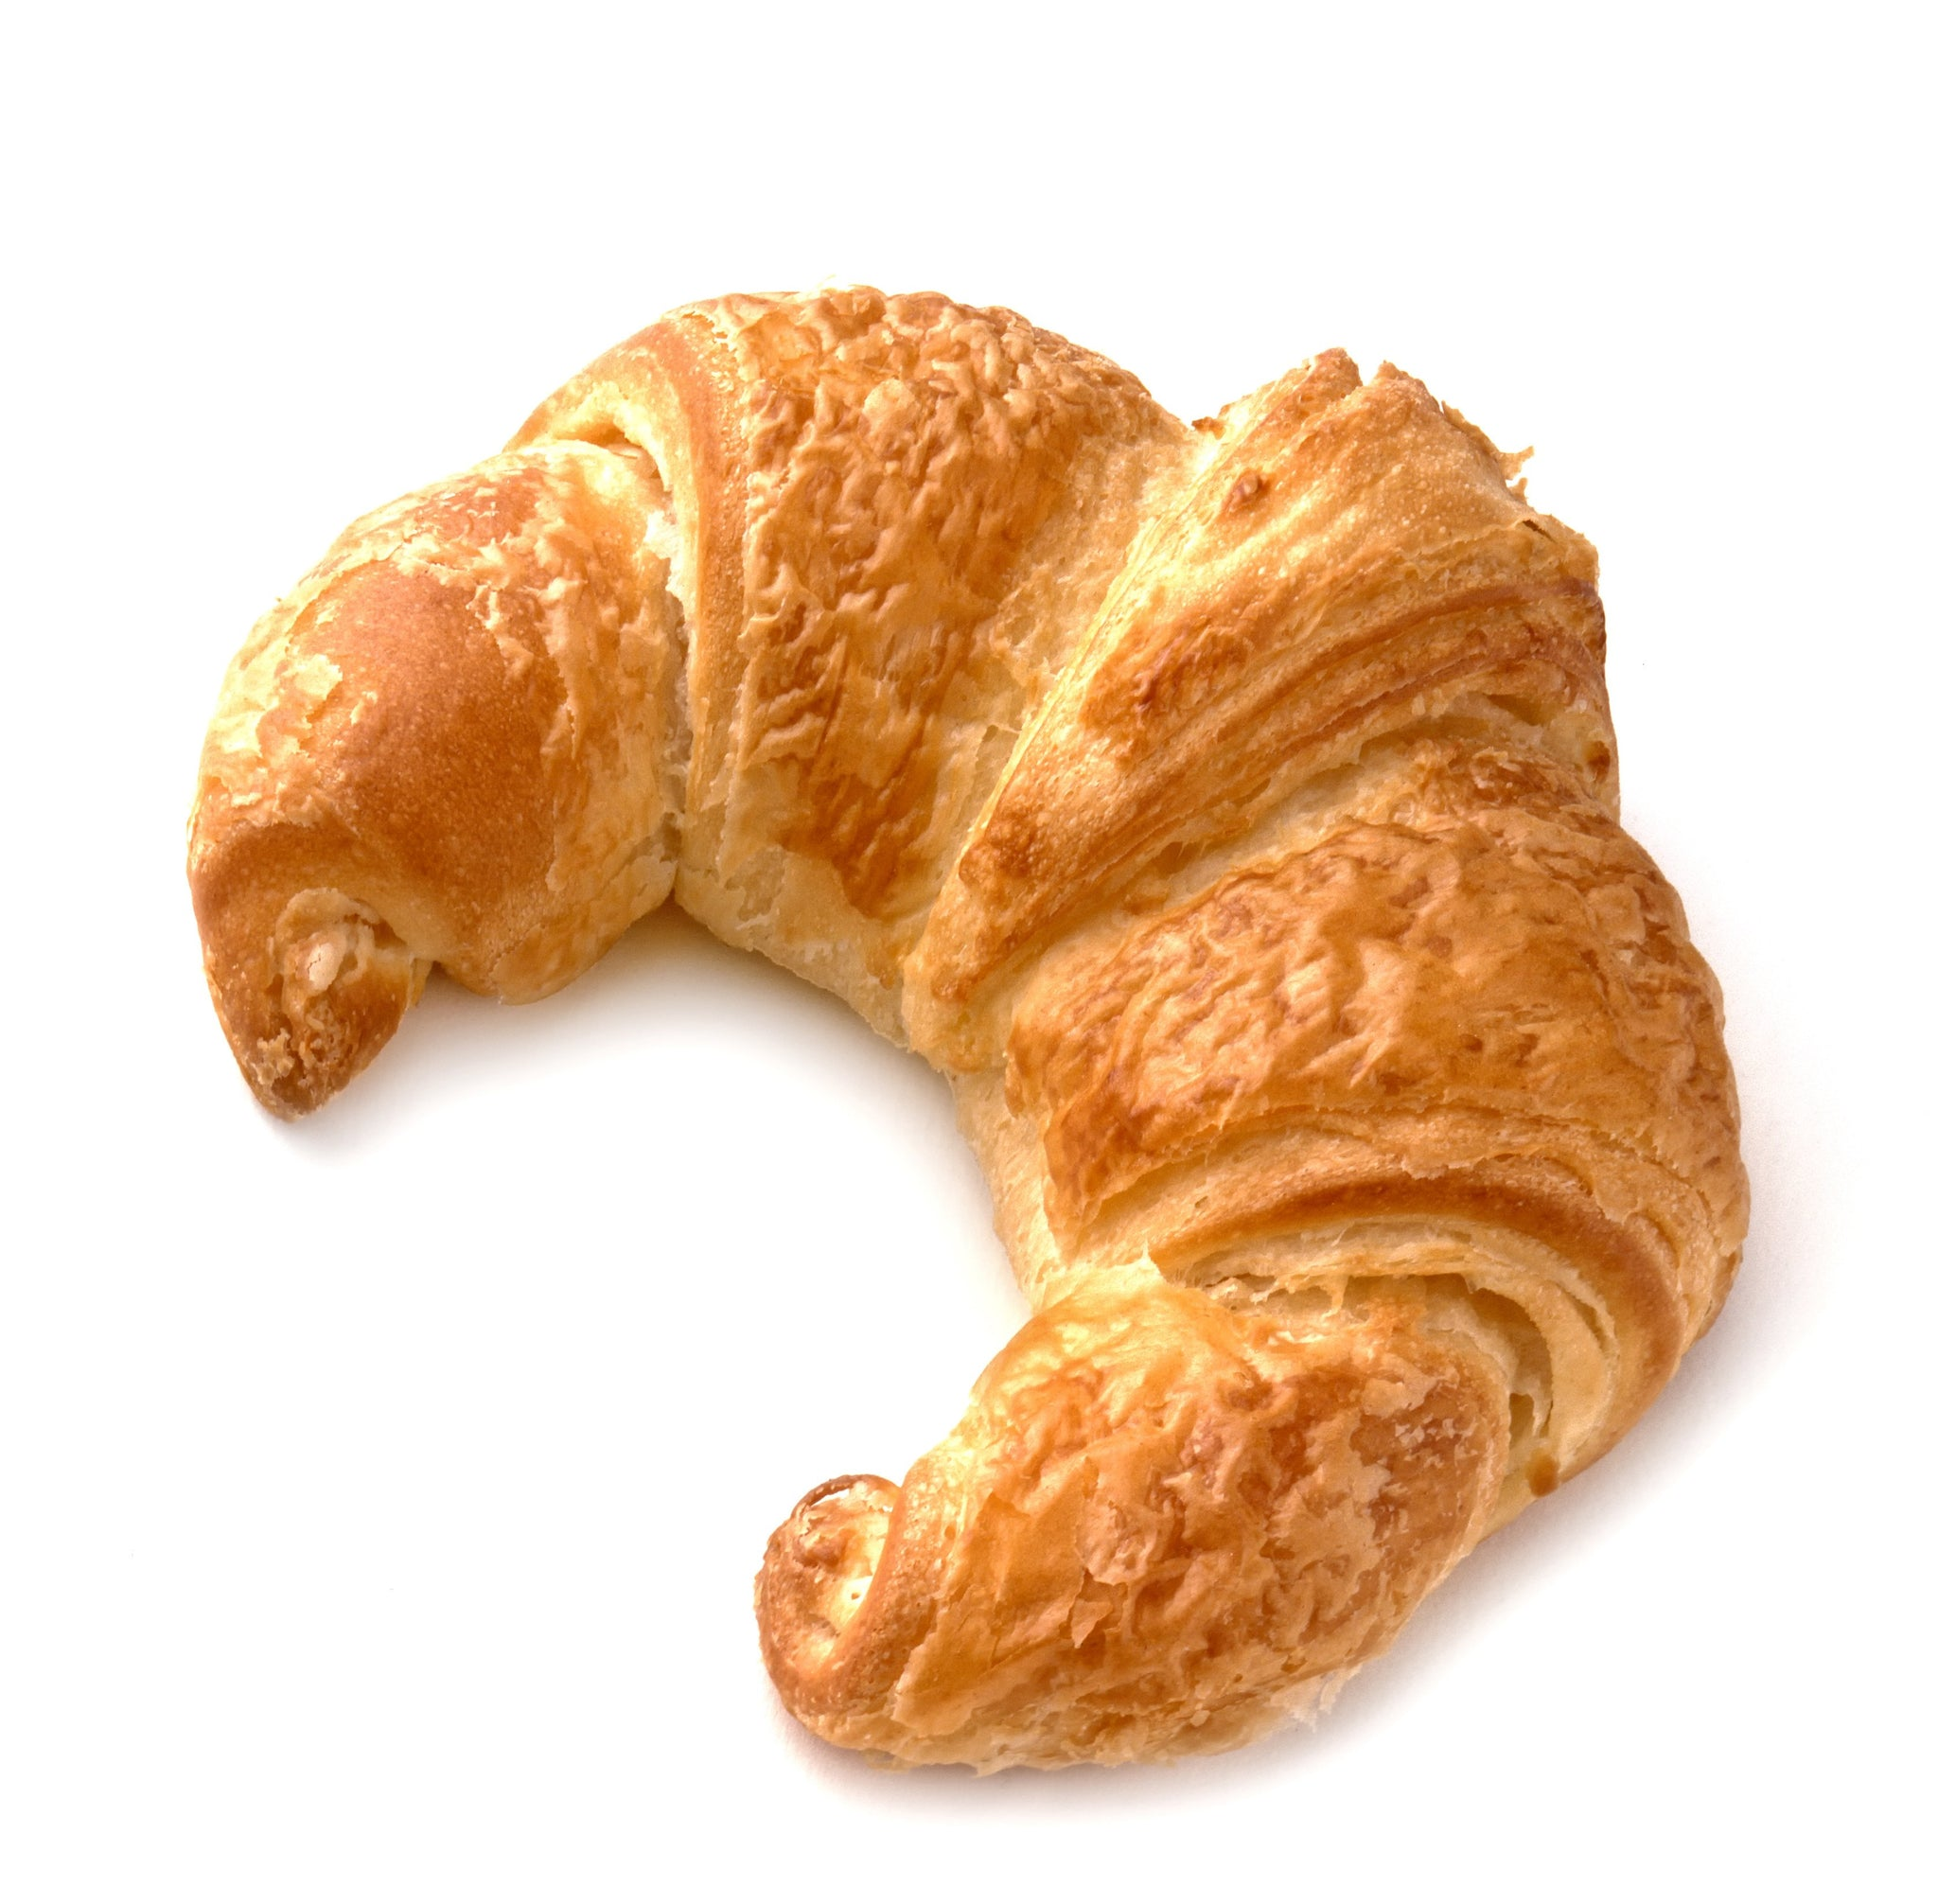 gre>Mini croissants -12 in packet, 32g